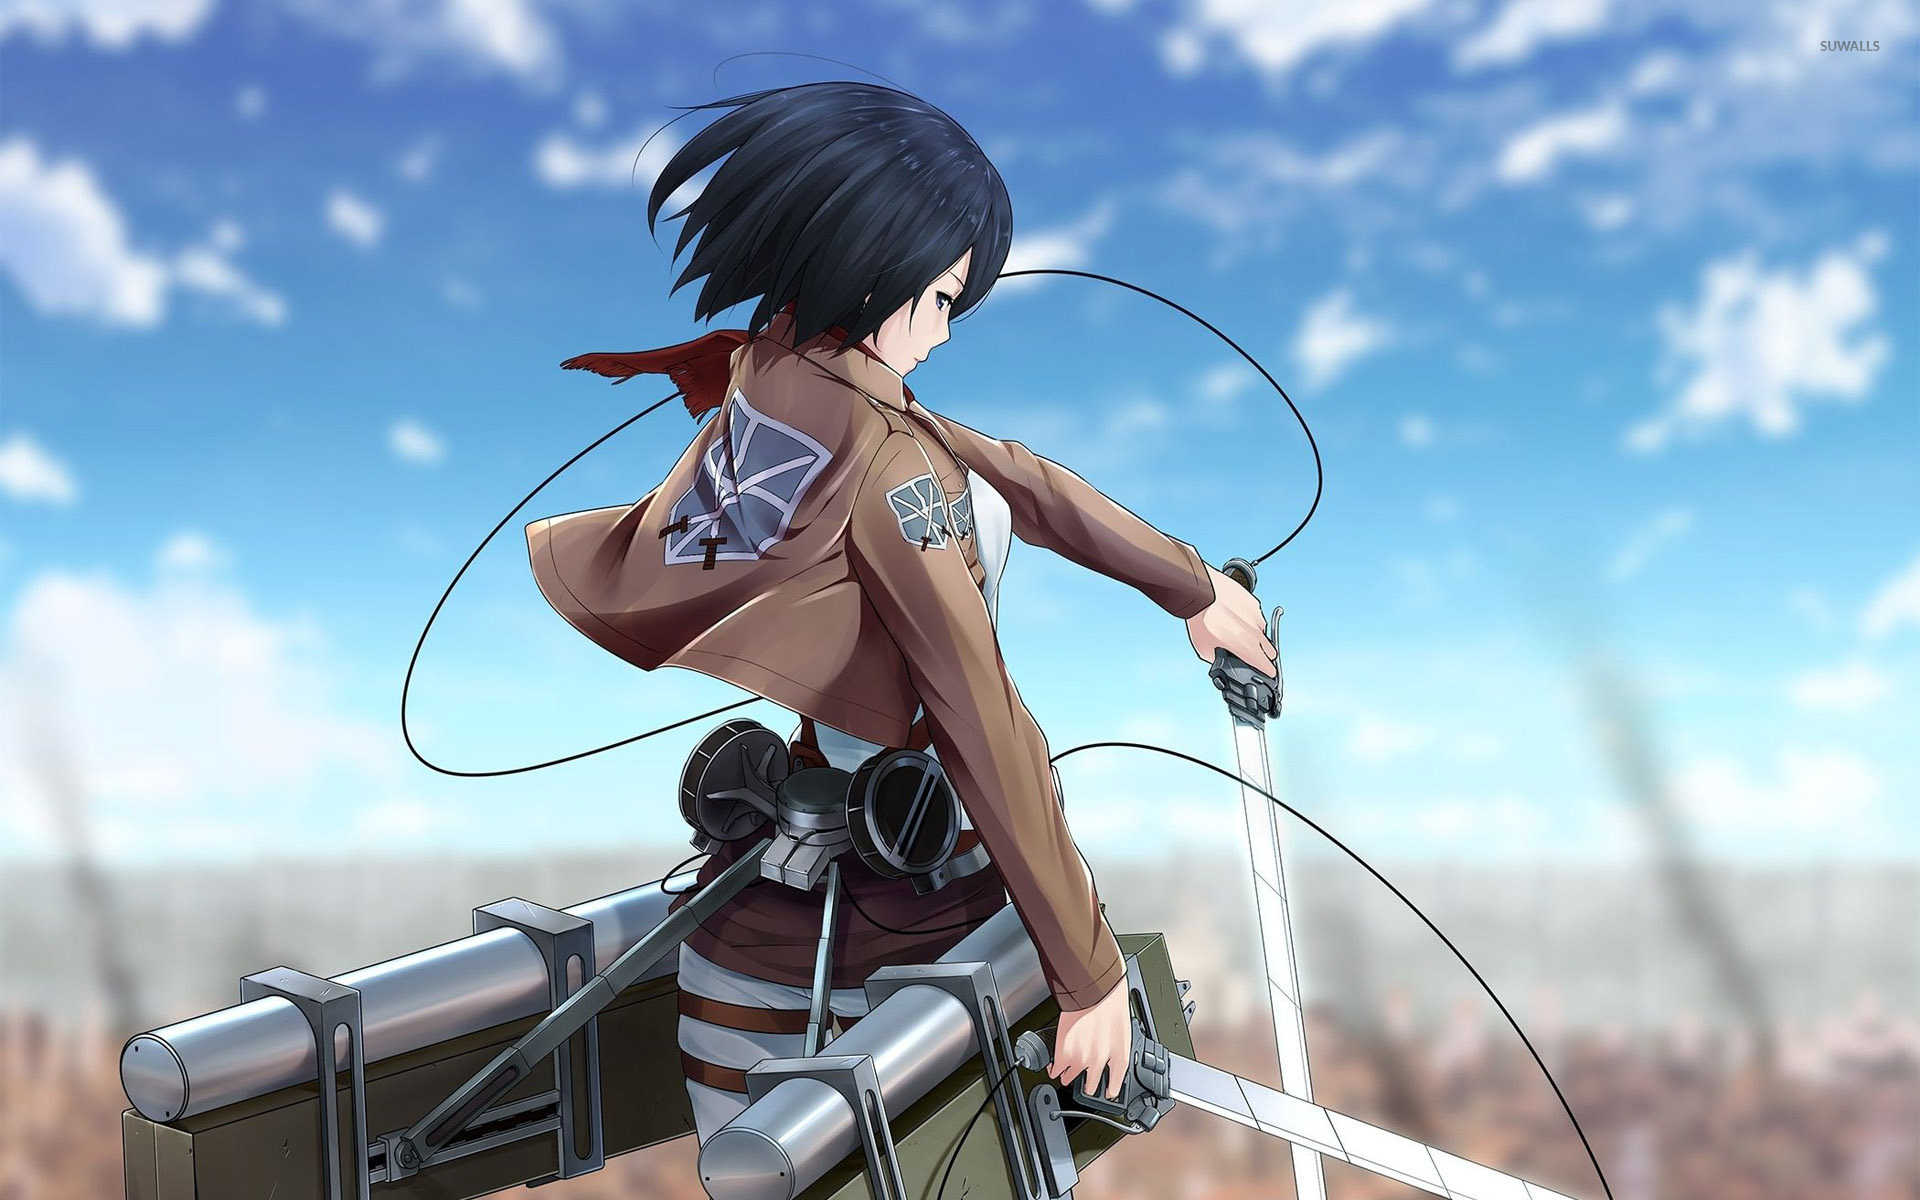 Mikasa Ackerman Attack On Titan 2 Wallpaper Anime Wallpapers